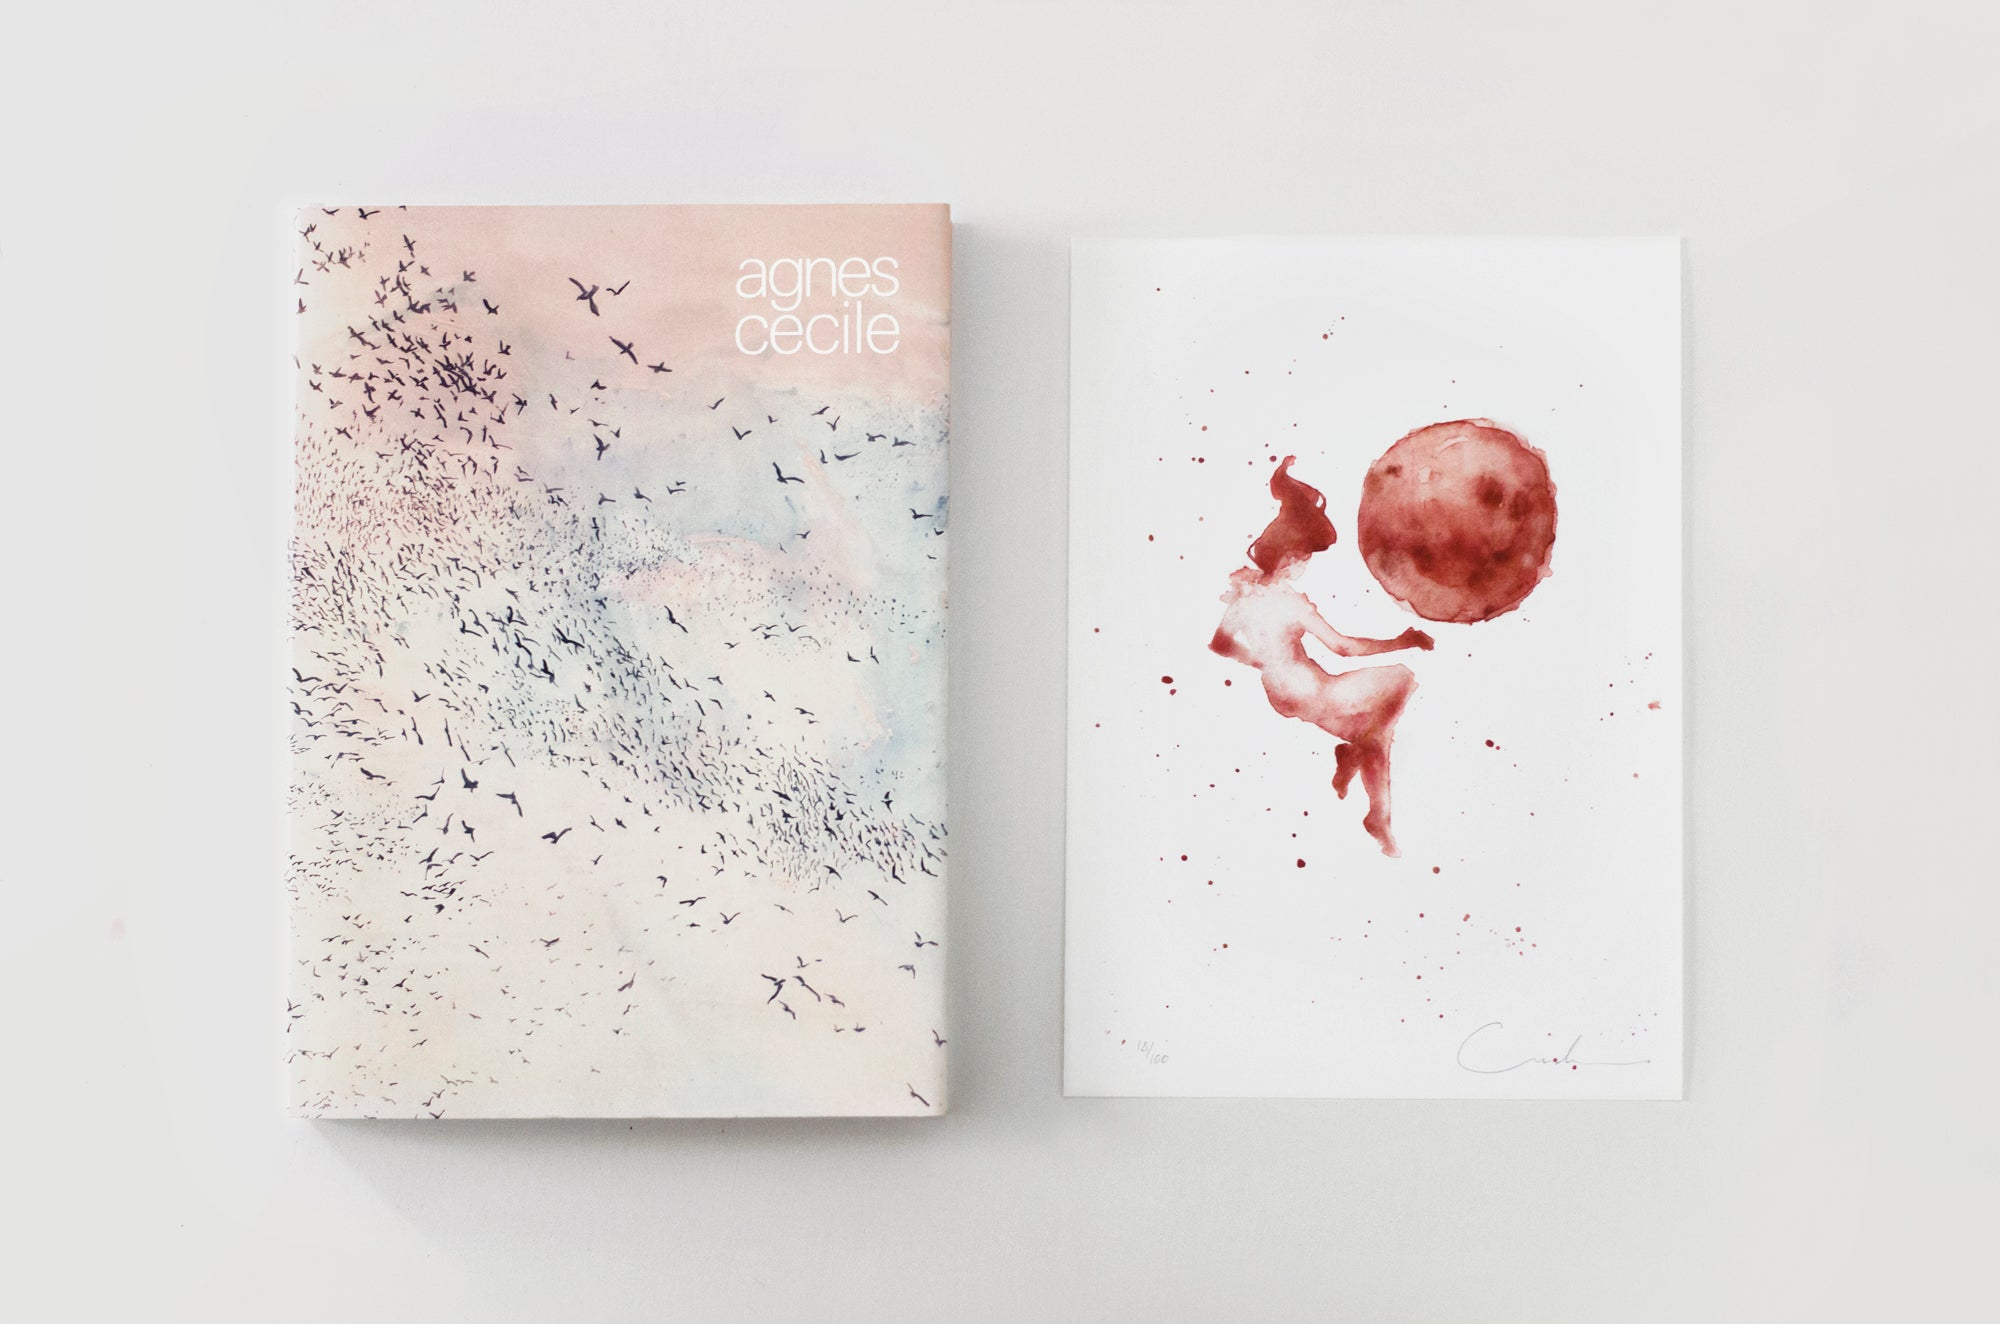 Agnes-Cecile Artbook Limited Edition (in the huge silence)